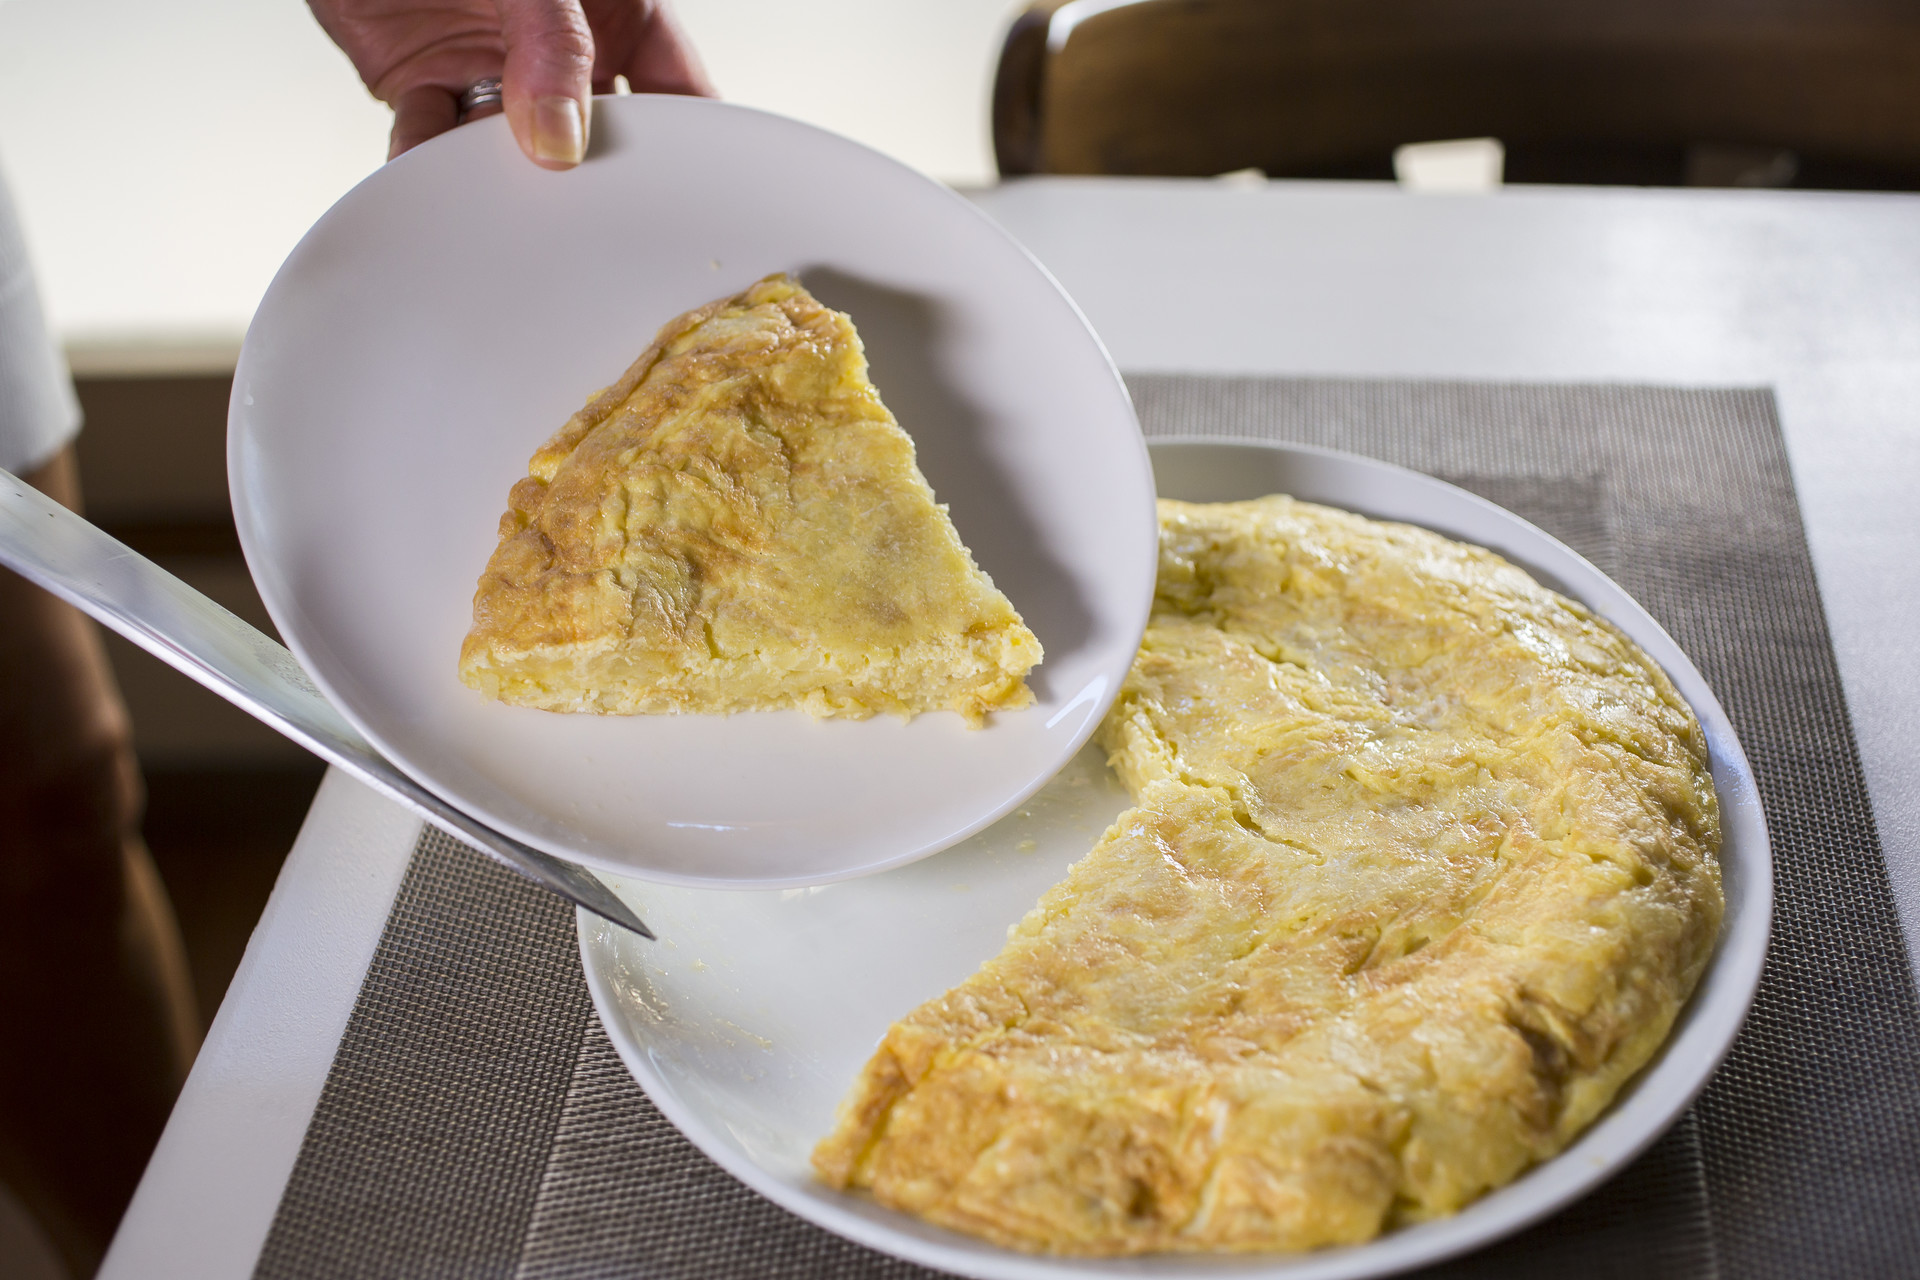 tradicional spanish tortilla recipe home cooking with julie neville0